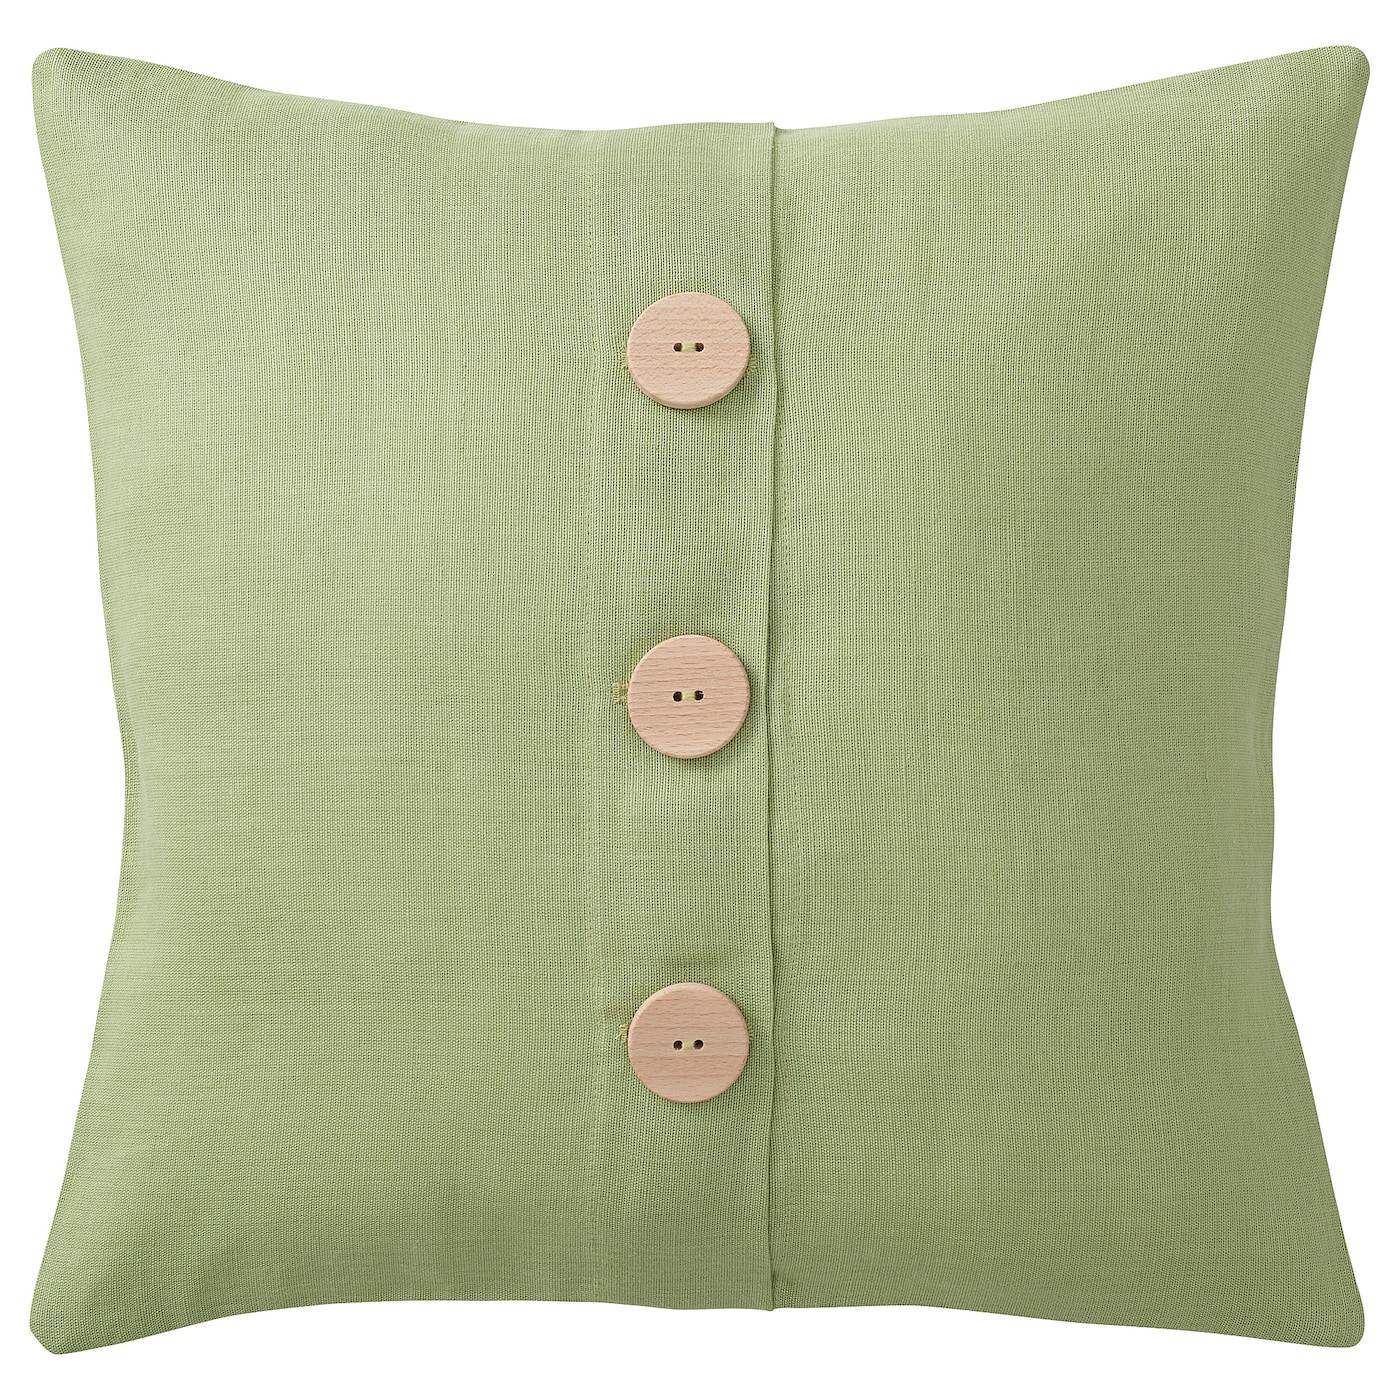 IKEA BJÖRKSNÄS cushion cover Linen is strong and durable and gets softer after washing.